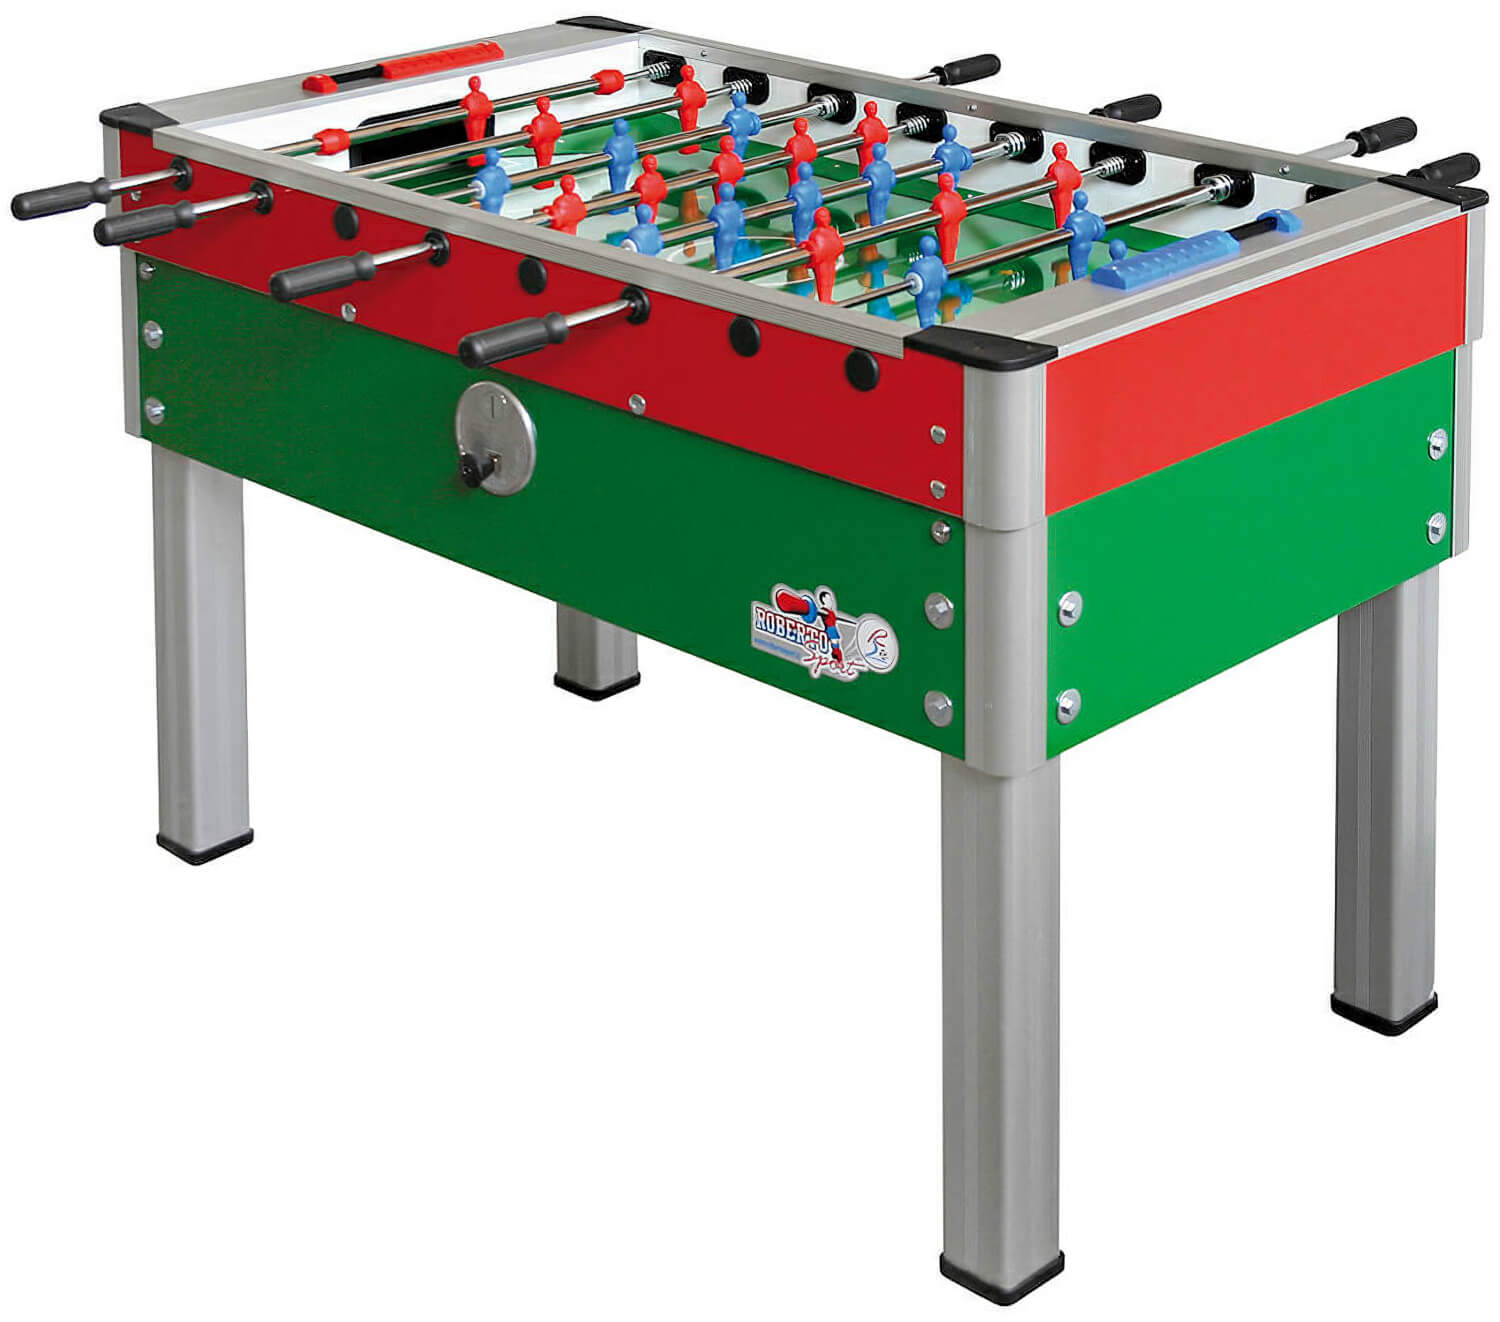 Roberto Sport New Camp Coin Operated Football Table